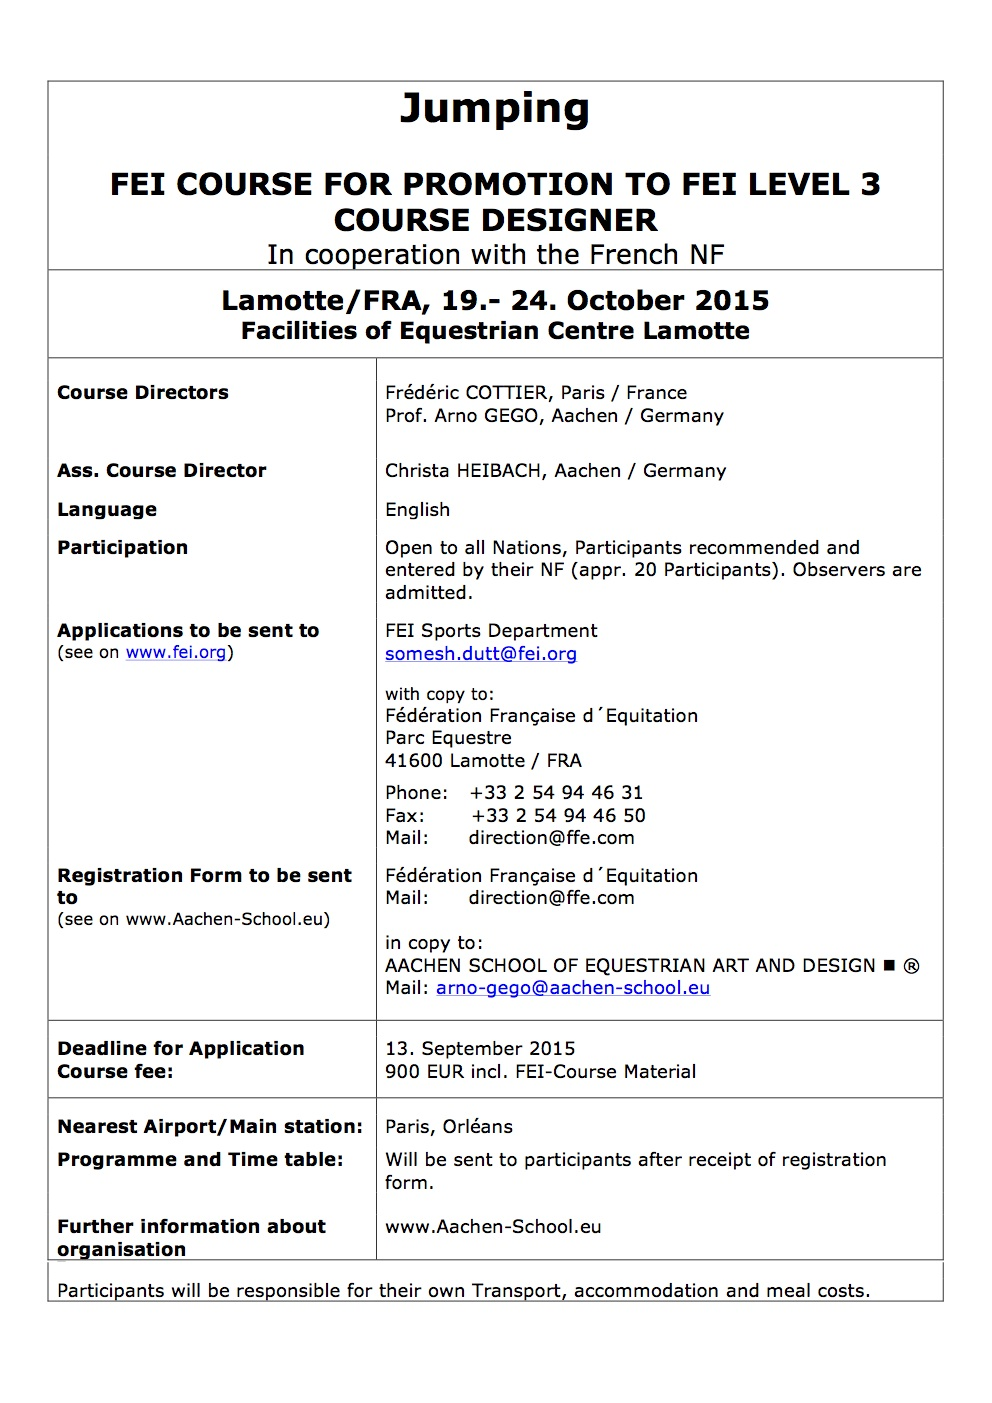 Level 3 Course for Course Design, 19.-24. October 2015 in Lamotte/FRA